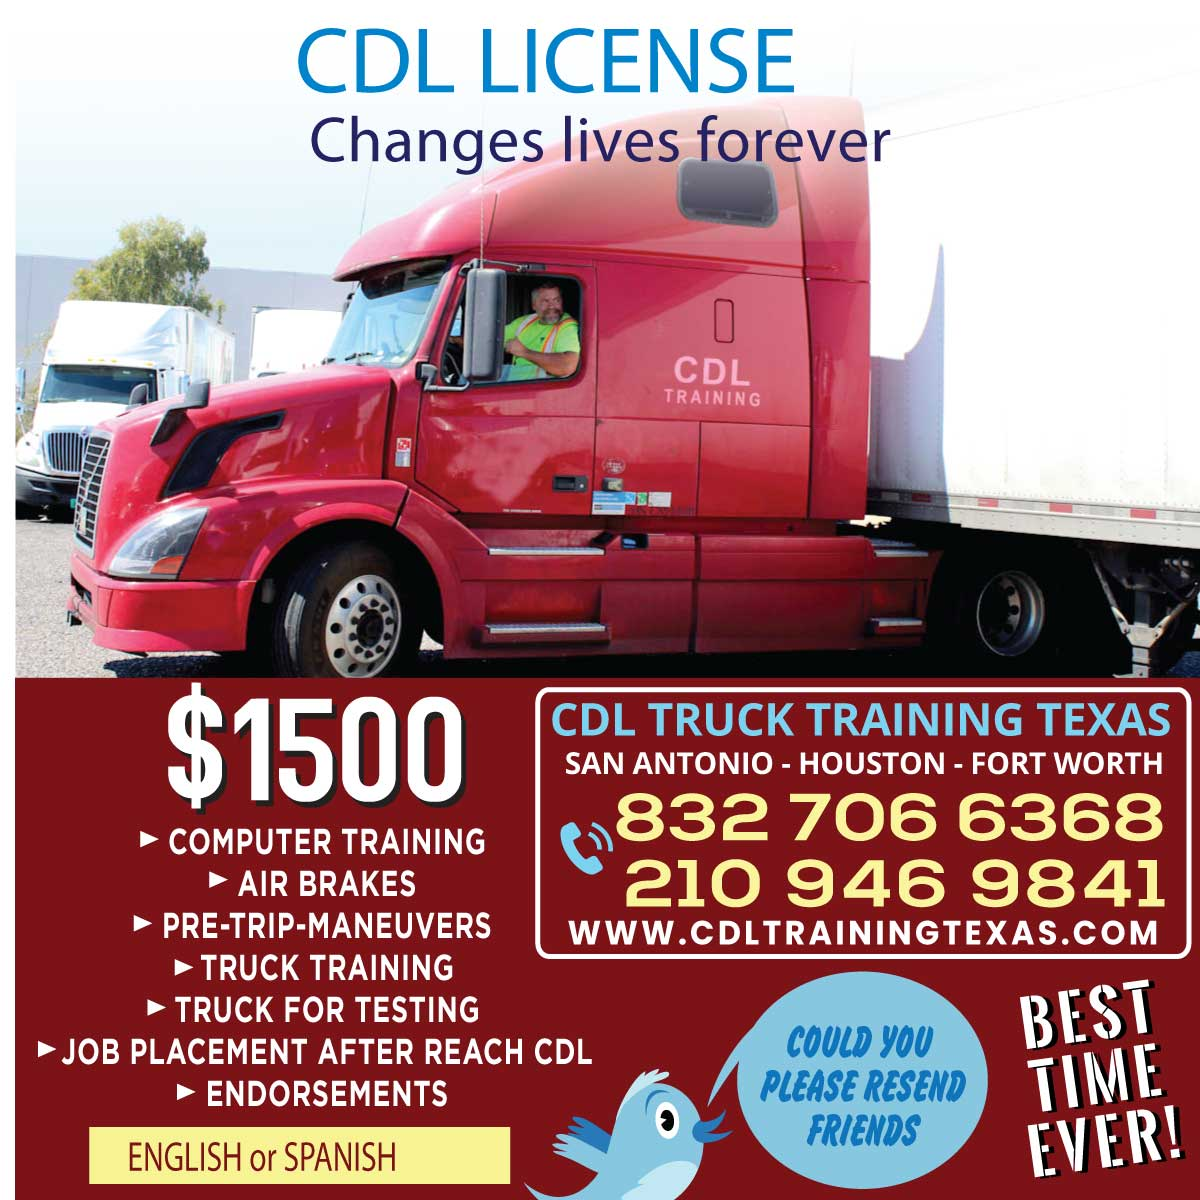 TOTAL information CDL TRUCK DRIVING SCHOOL HOUSTON phone numbers